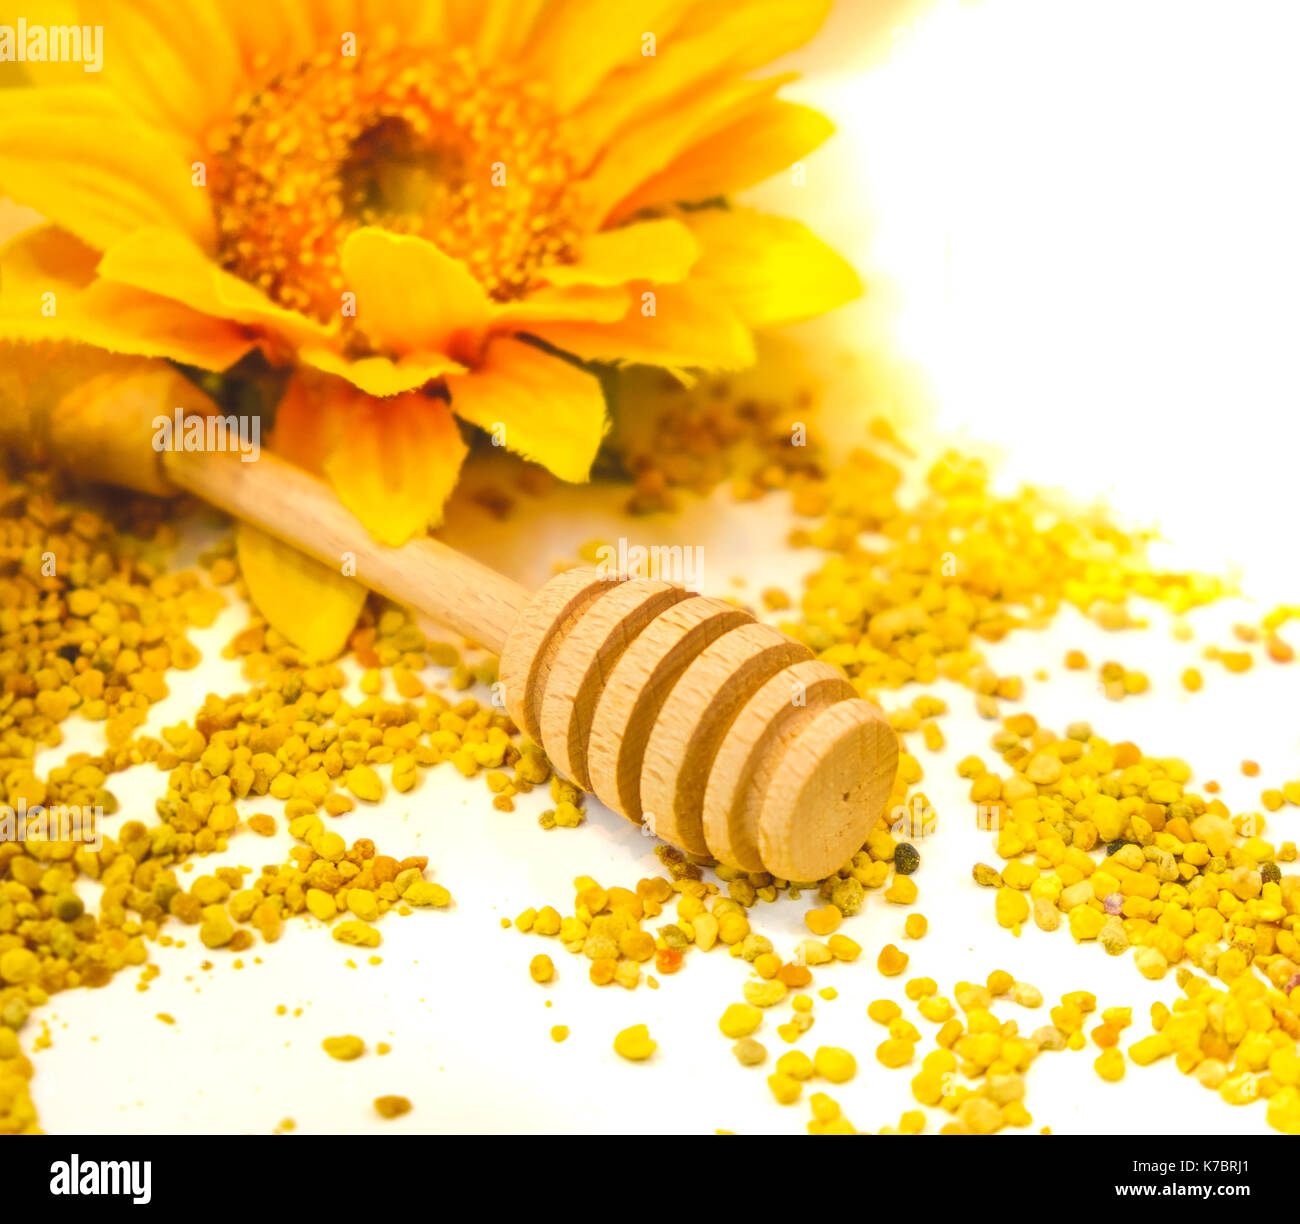 propolis granules honey dripper background drizzle wooden spoon - Stock Image